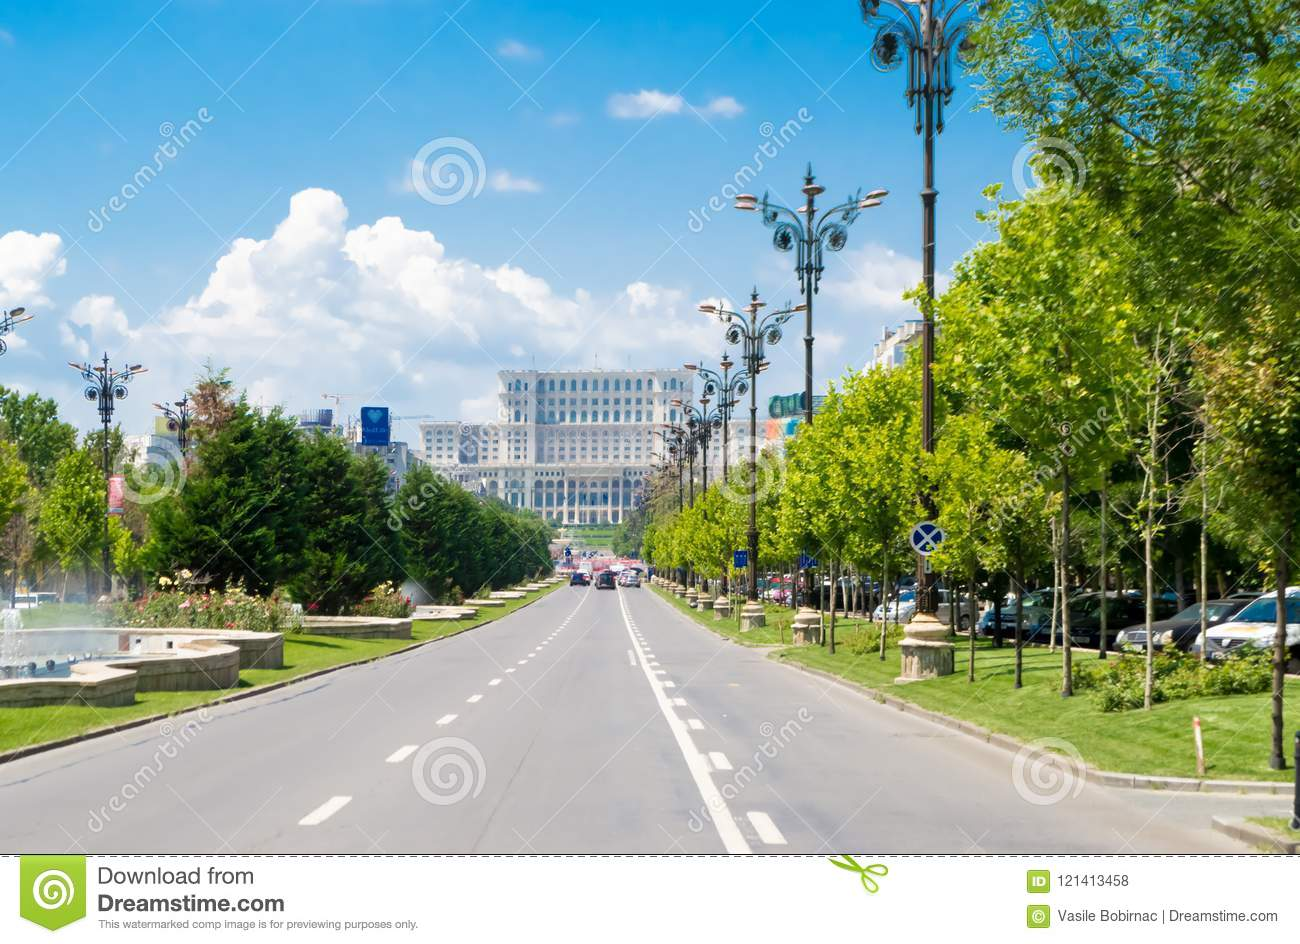 The Union Boulevard and the Parliament Palace in Bucharest, Romania.